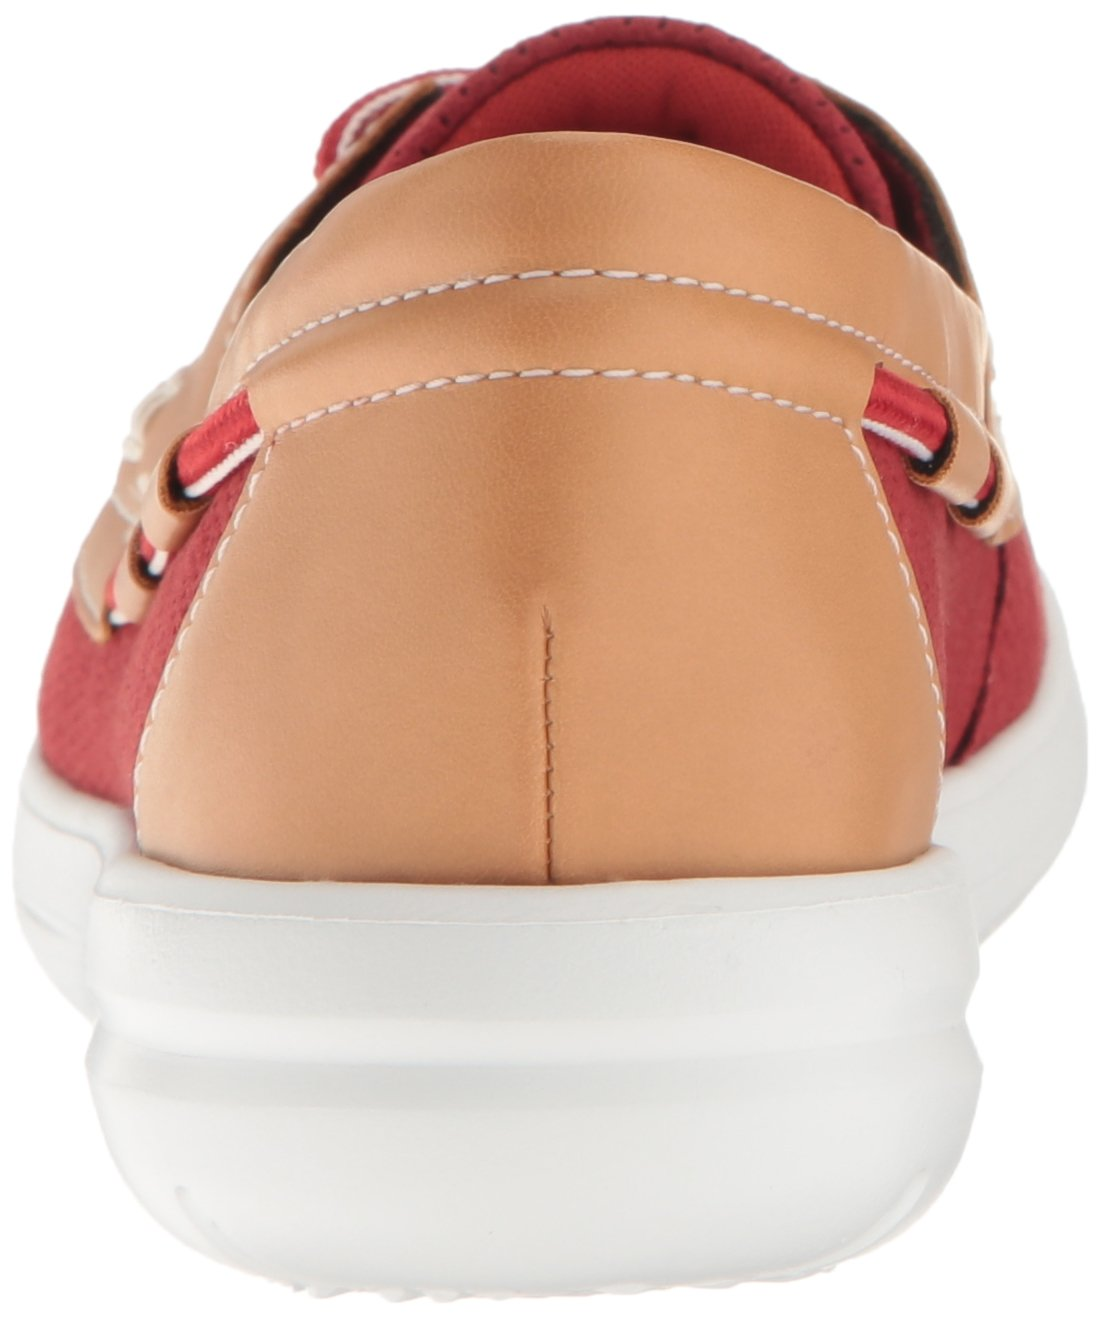 CLARKS Women's Jocolin Vista Boat Shoe, Red Perforated Microfiber, 12 B(M) US by CLARKS (Image #2)